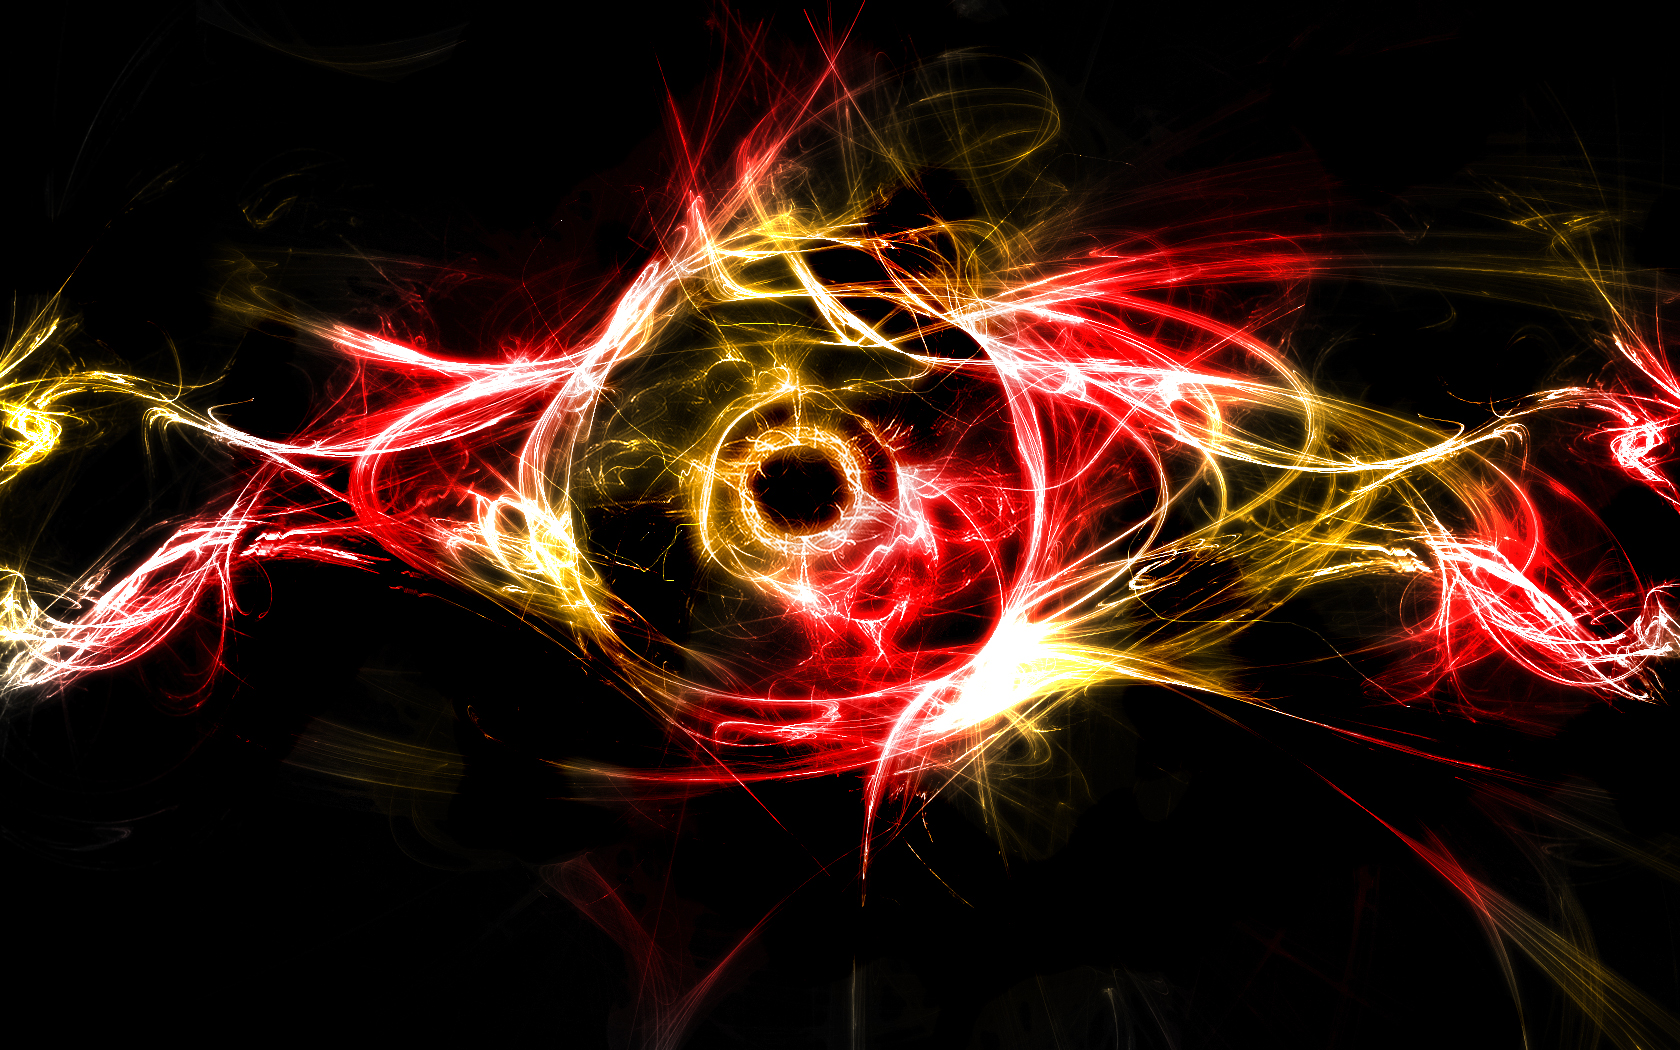 abstract desktop backgrounds 2 HD Wallpaper 3D amp Abstract Wallpapers 1680x1050